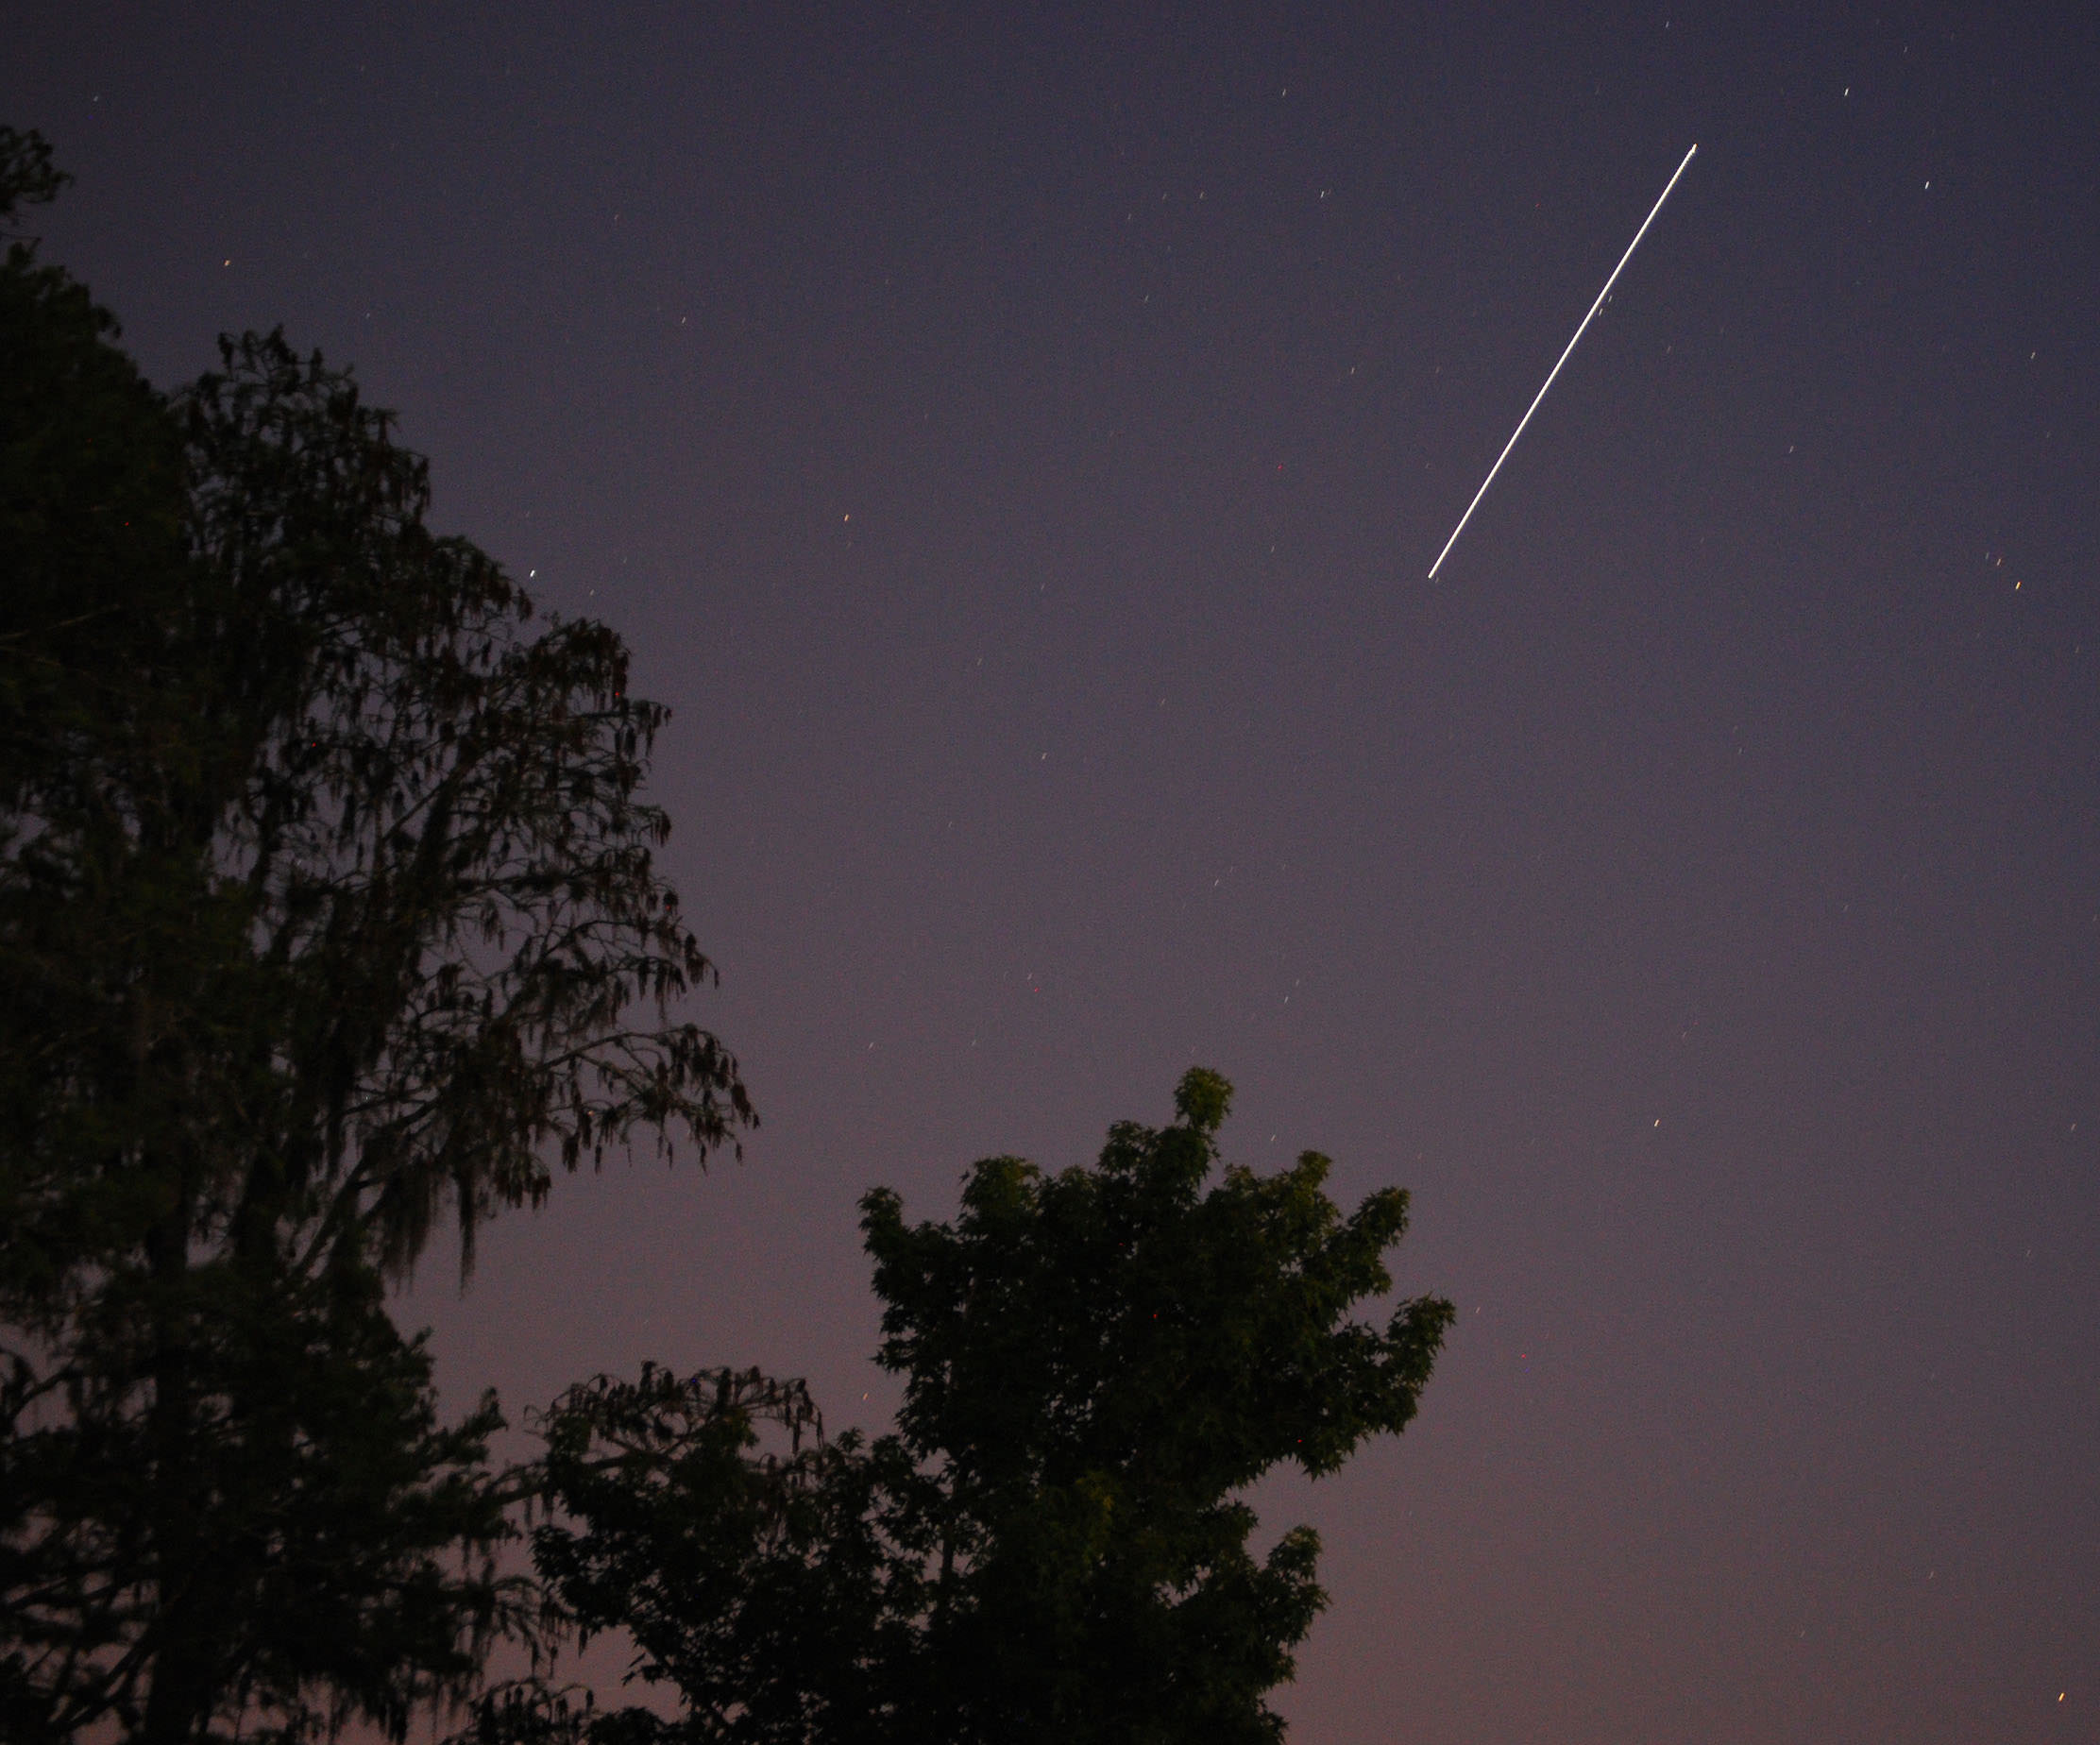 A 10 second exposure of a bright pass of the International Space Station. (Photo by Author).